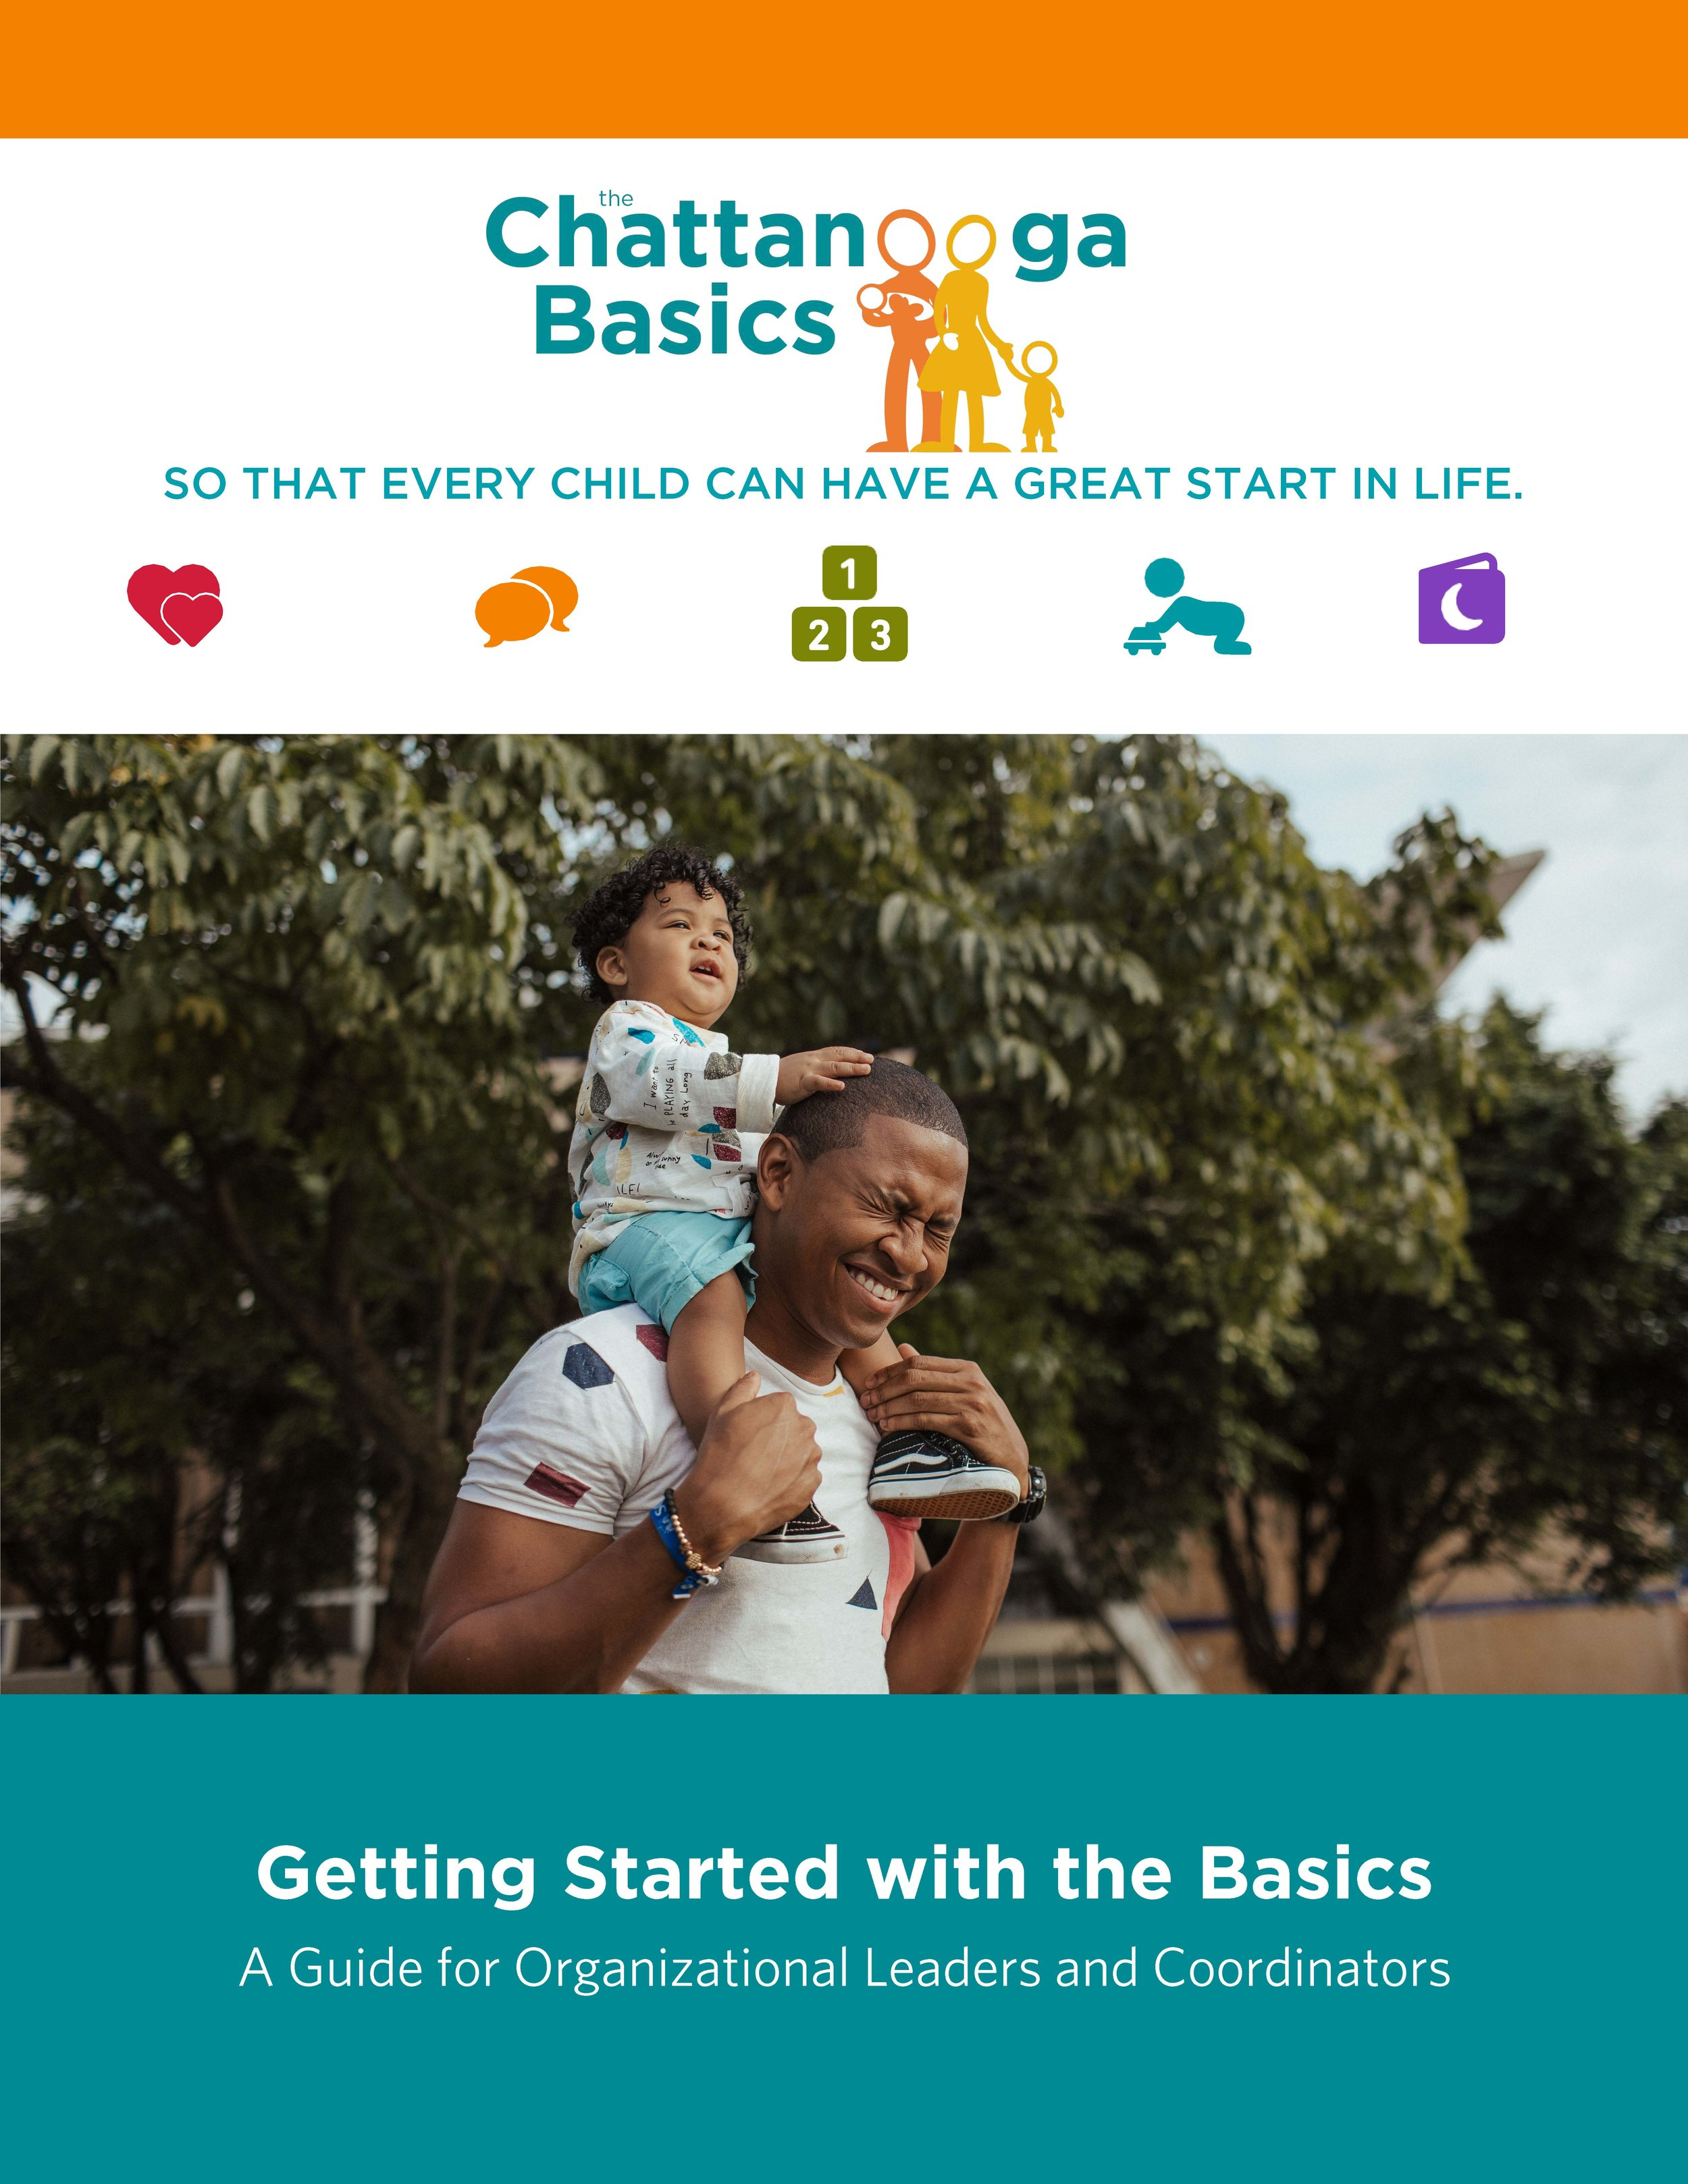 Getting Started With The Chattanooga Basics_Page_01.jpg